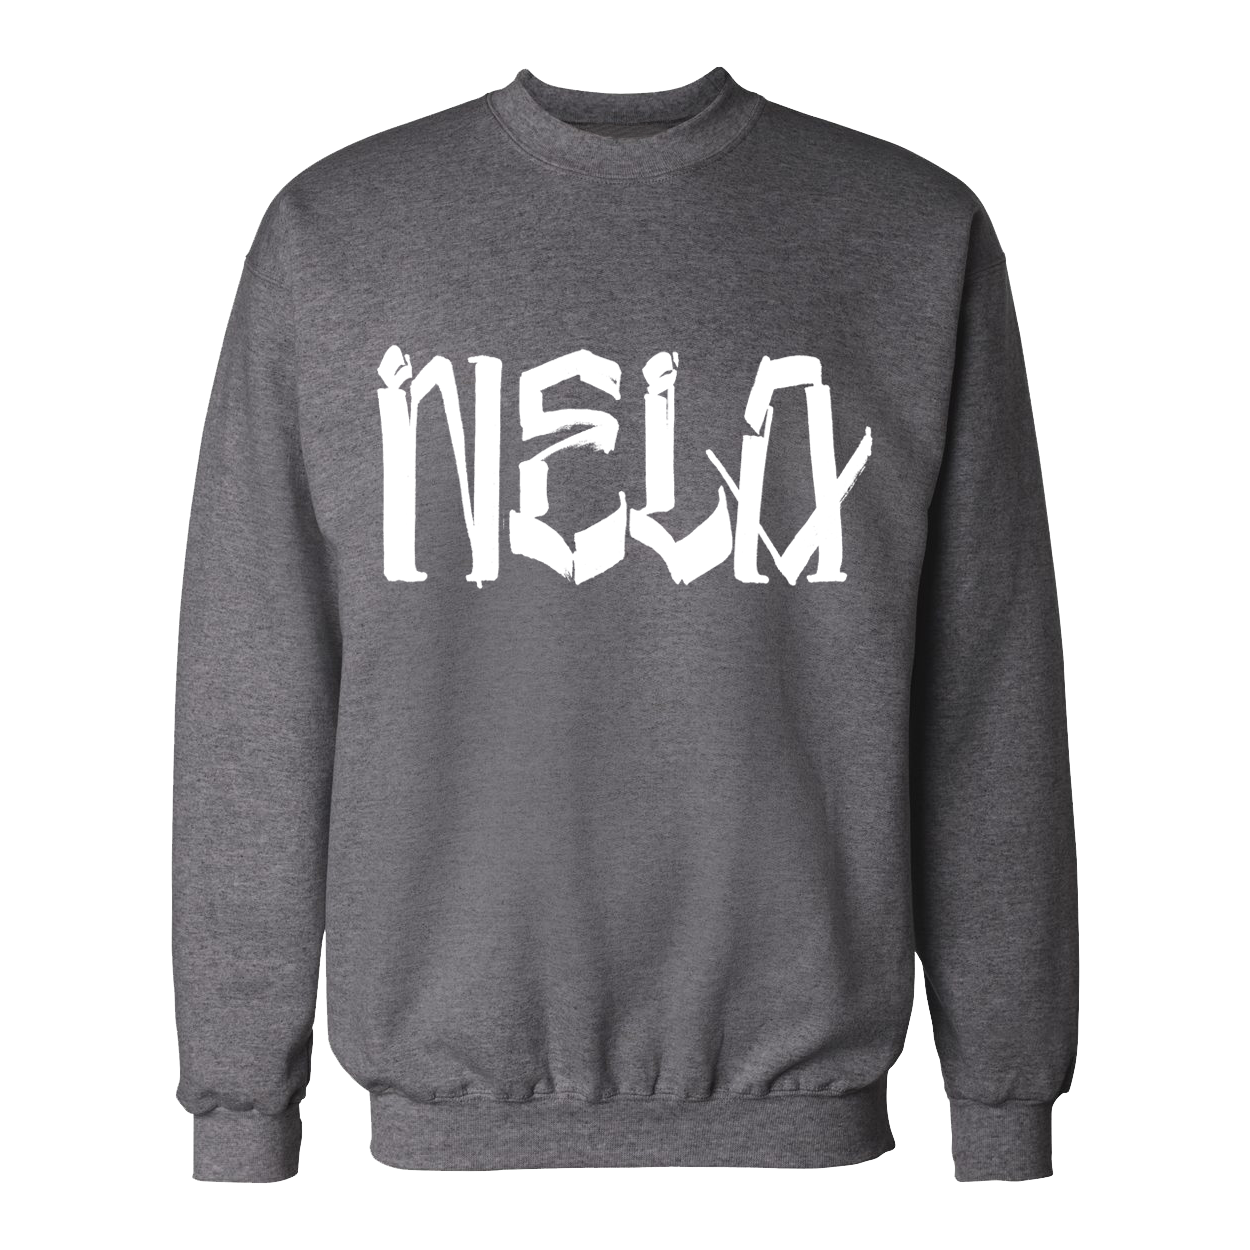 NELA by Chaz - Crew Sweatshirt (Light Steel)